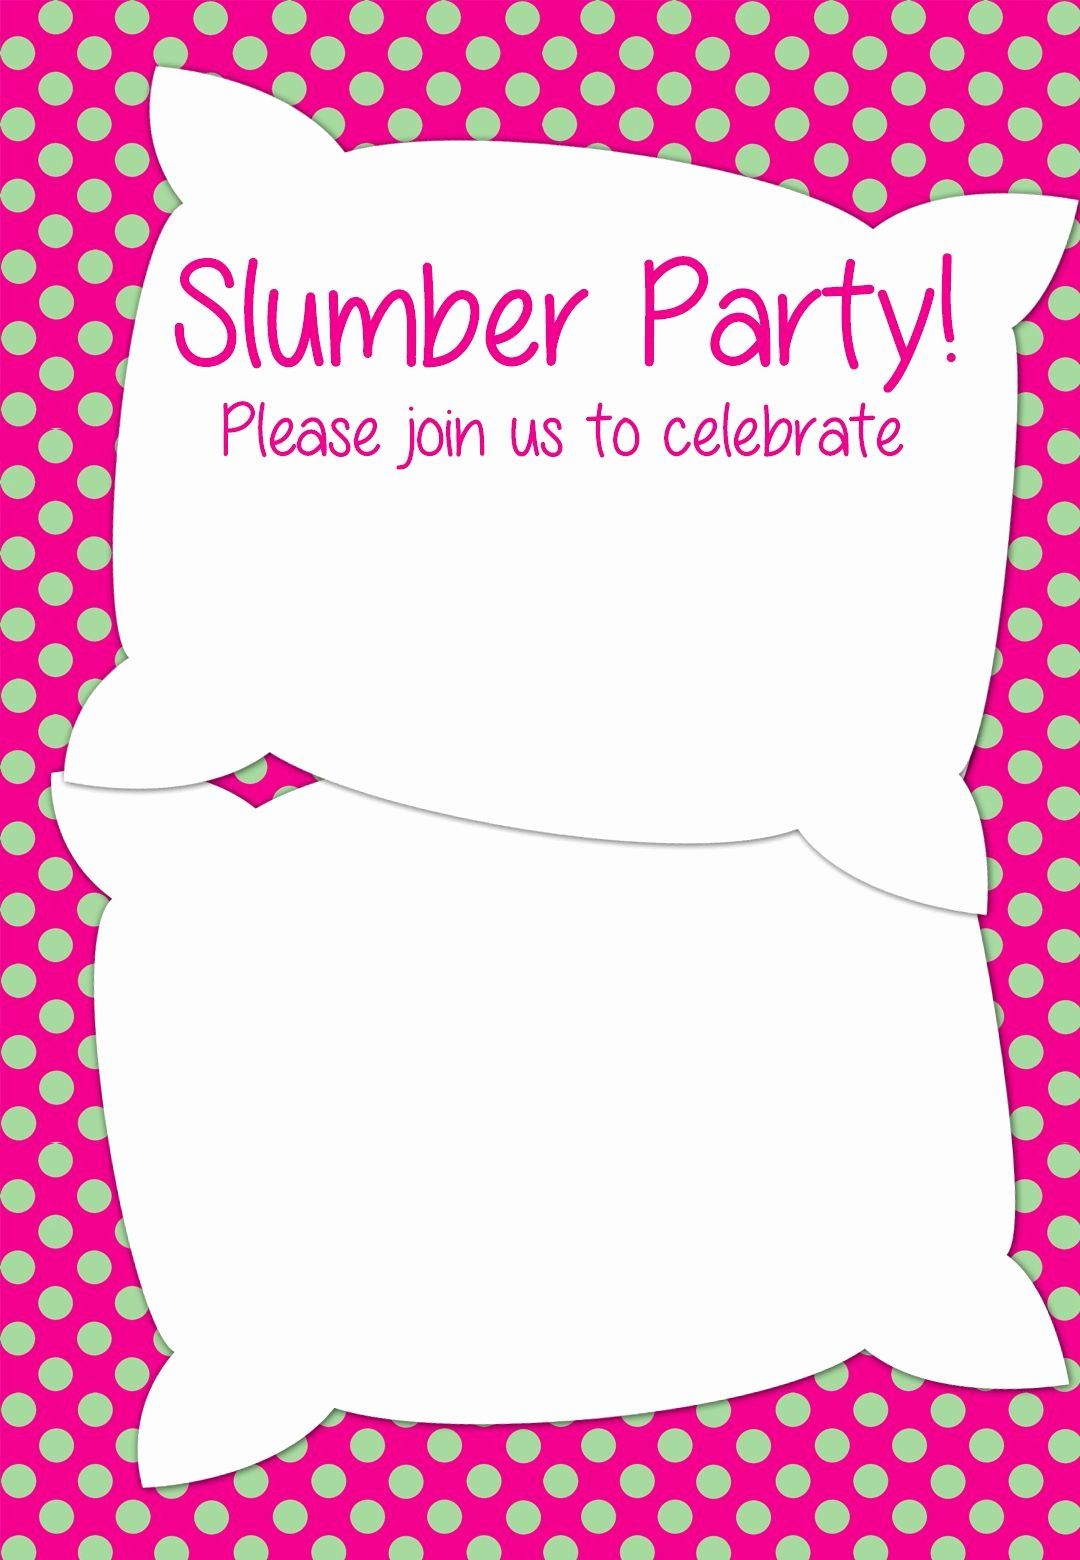 Free Sleepover Invitation Template Fresh Free Printable Slumber Party Invitation